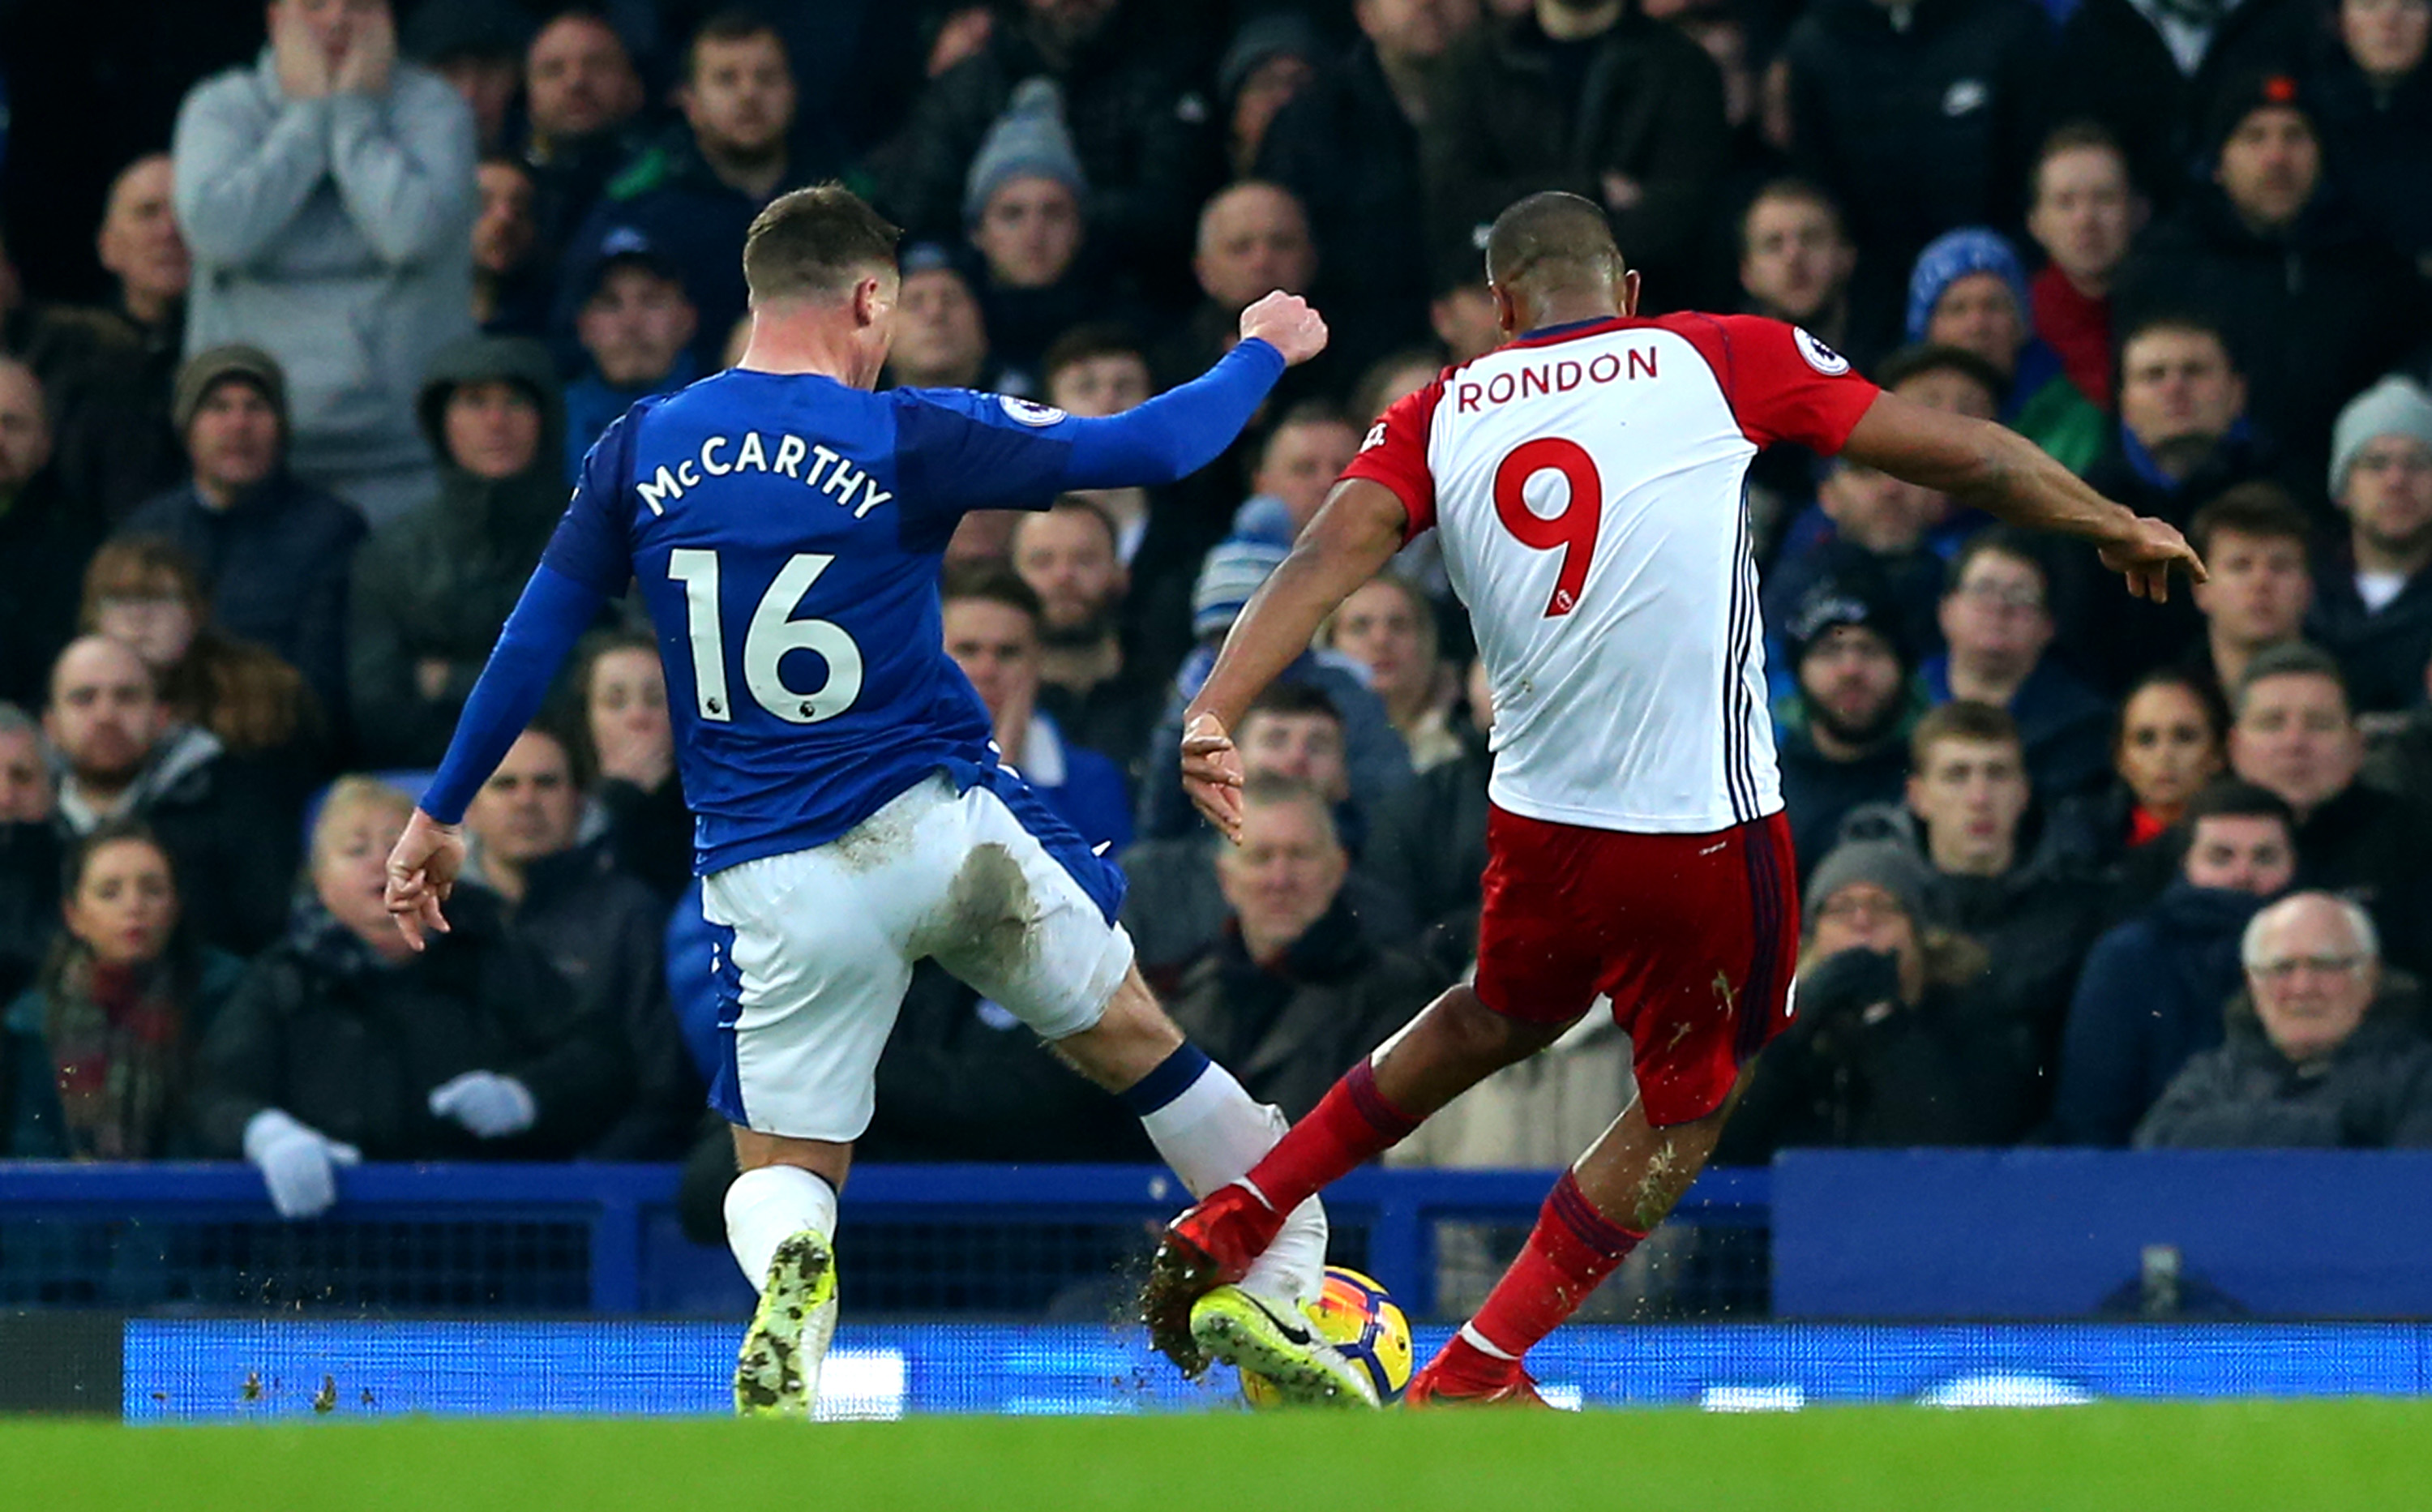 Fractura video Rondón McCarthy Liverpool West Brom